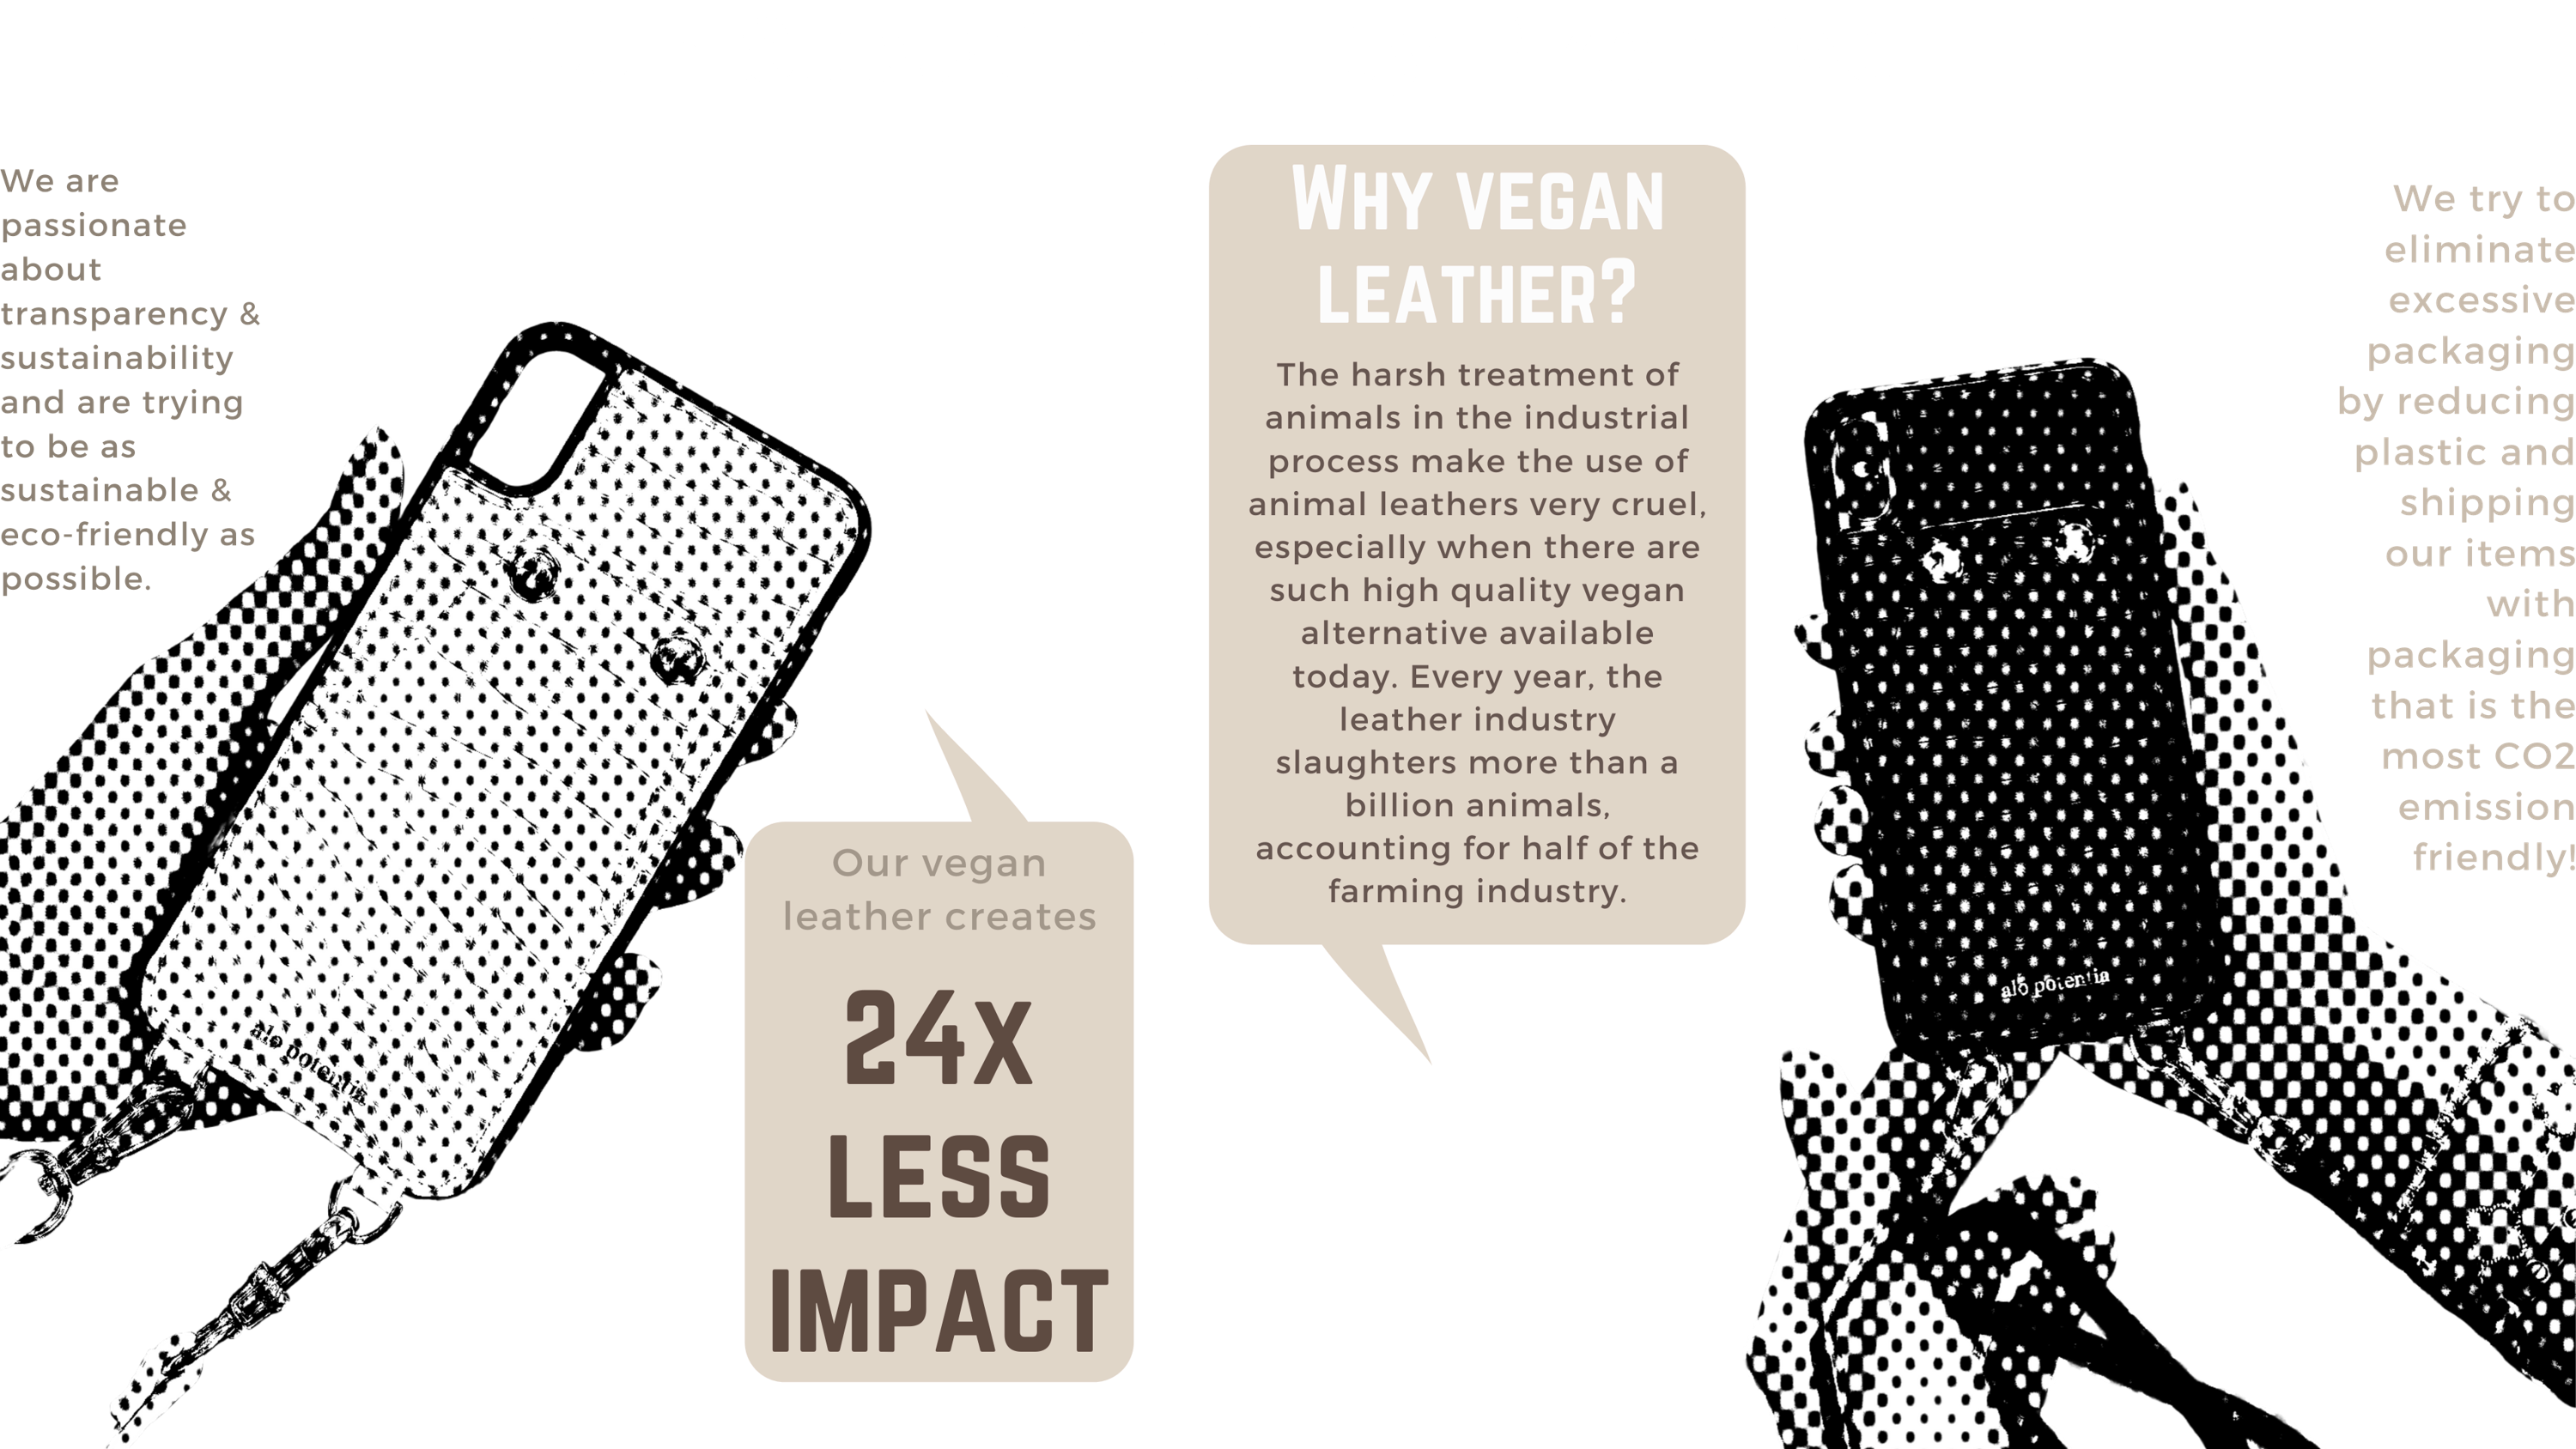 Sustainability Vegan Leather Information